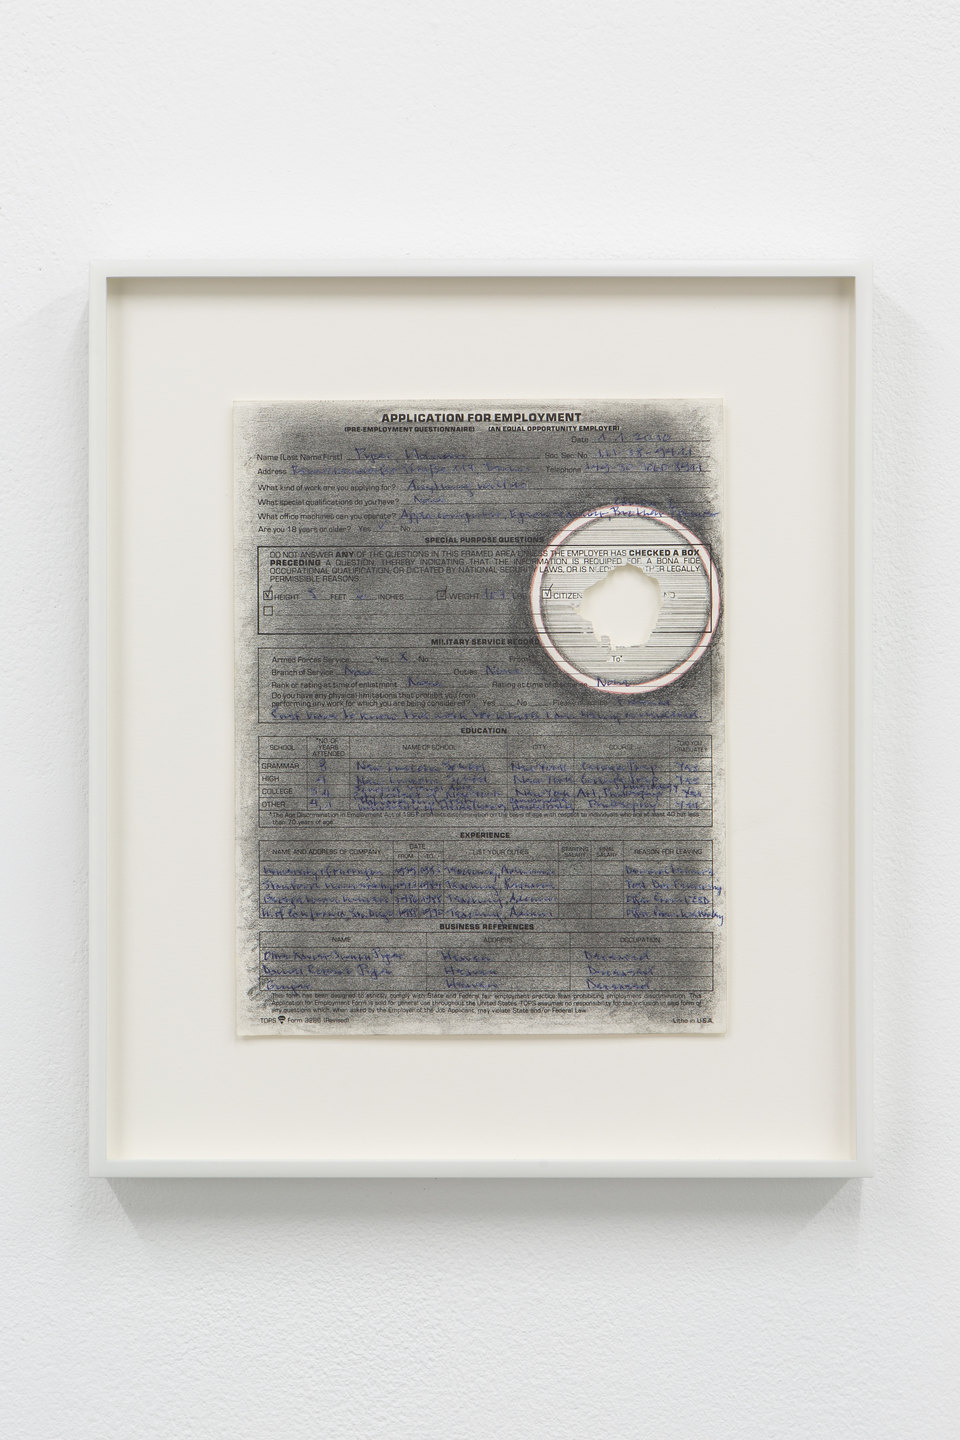 Adrian Piper, 'Vanishing Point #5', 2009, Ball-pen, red ball-point pen, black graphite pencil on application for employment form, sanded with sandpaper, 27.9 x 21.6cm, Civic Duty, 2019, Cell Project Space